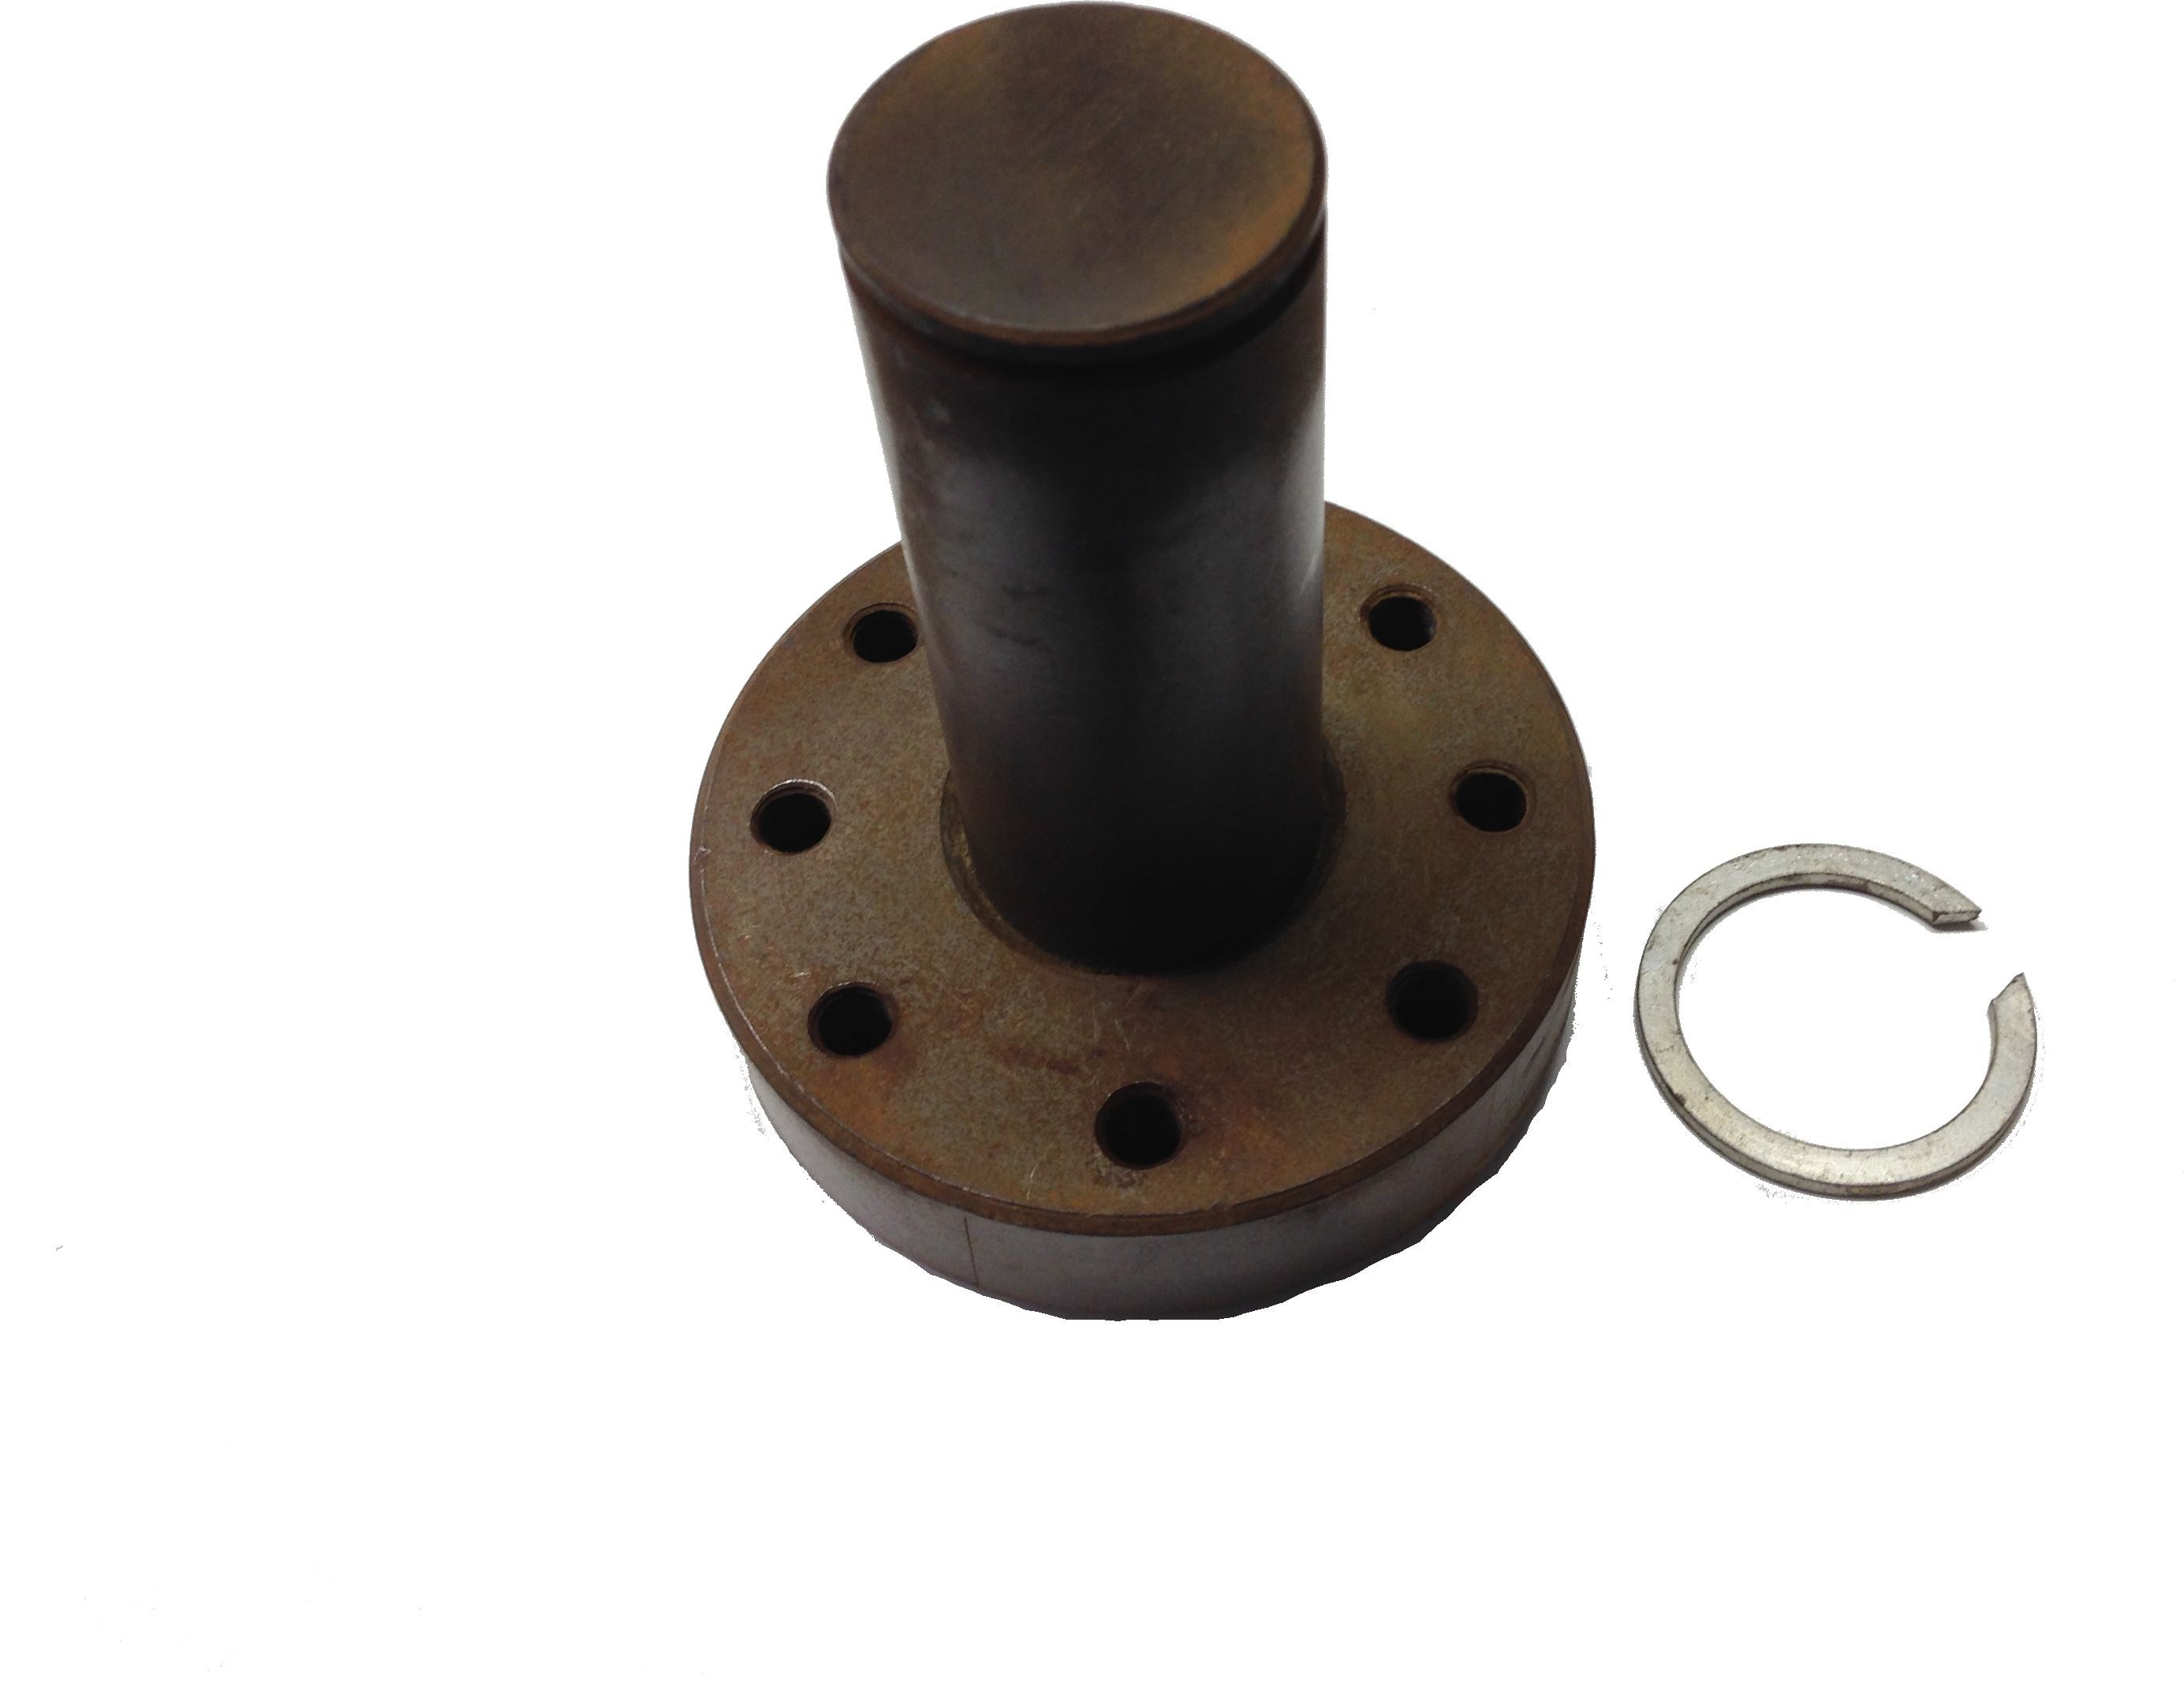 CL11-181 - Flange Hub, Secondary Clutch